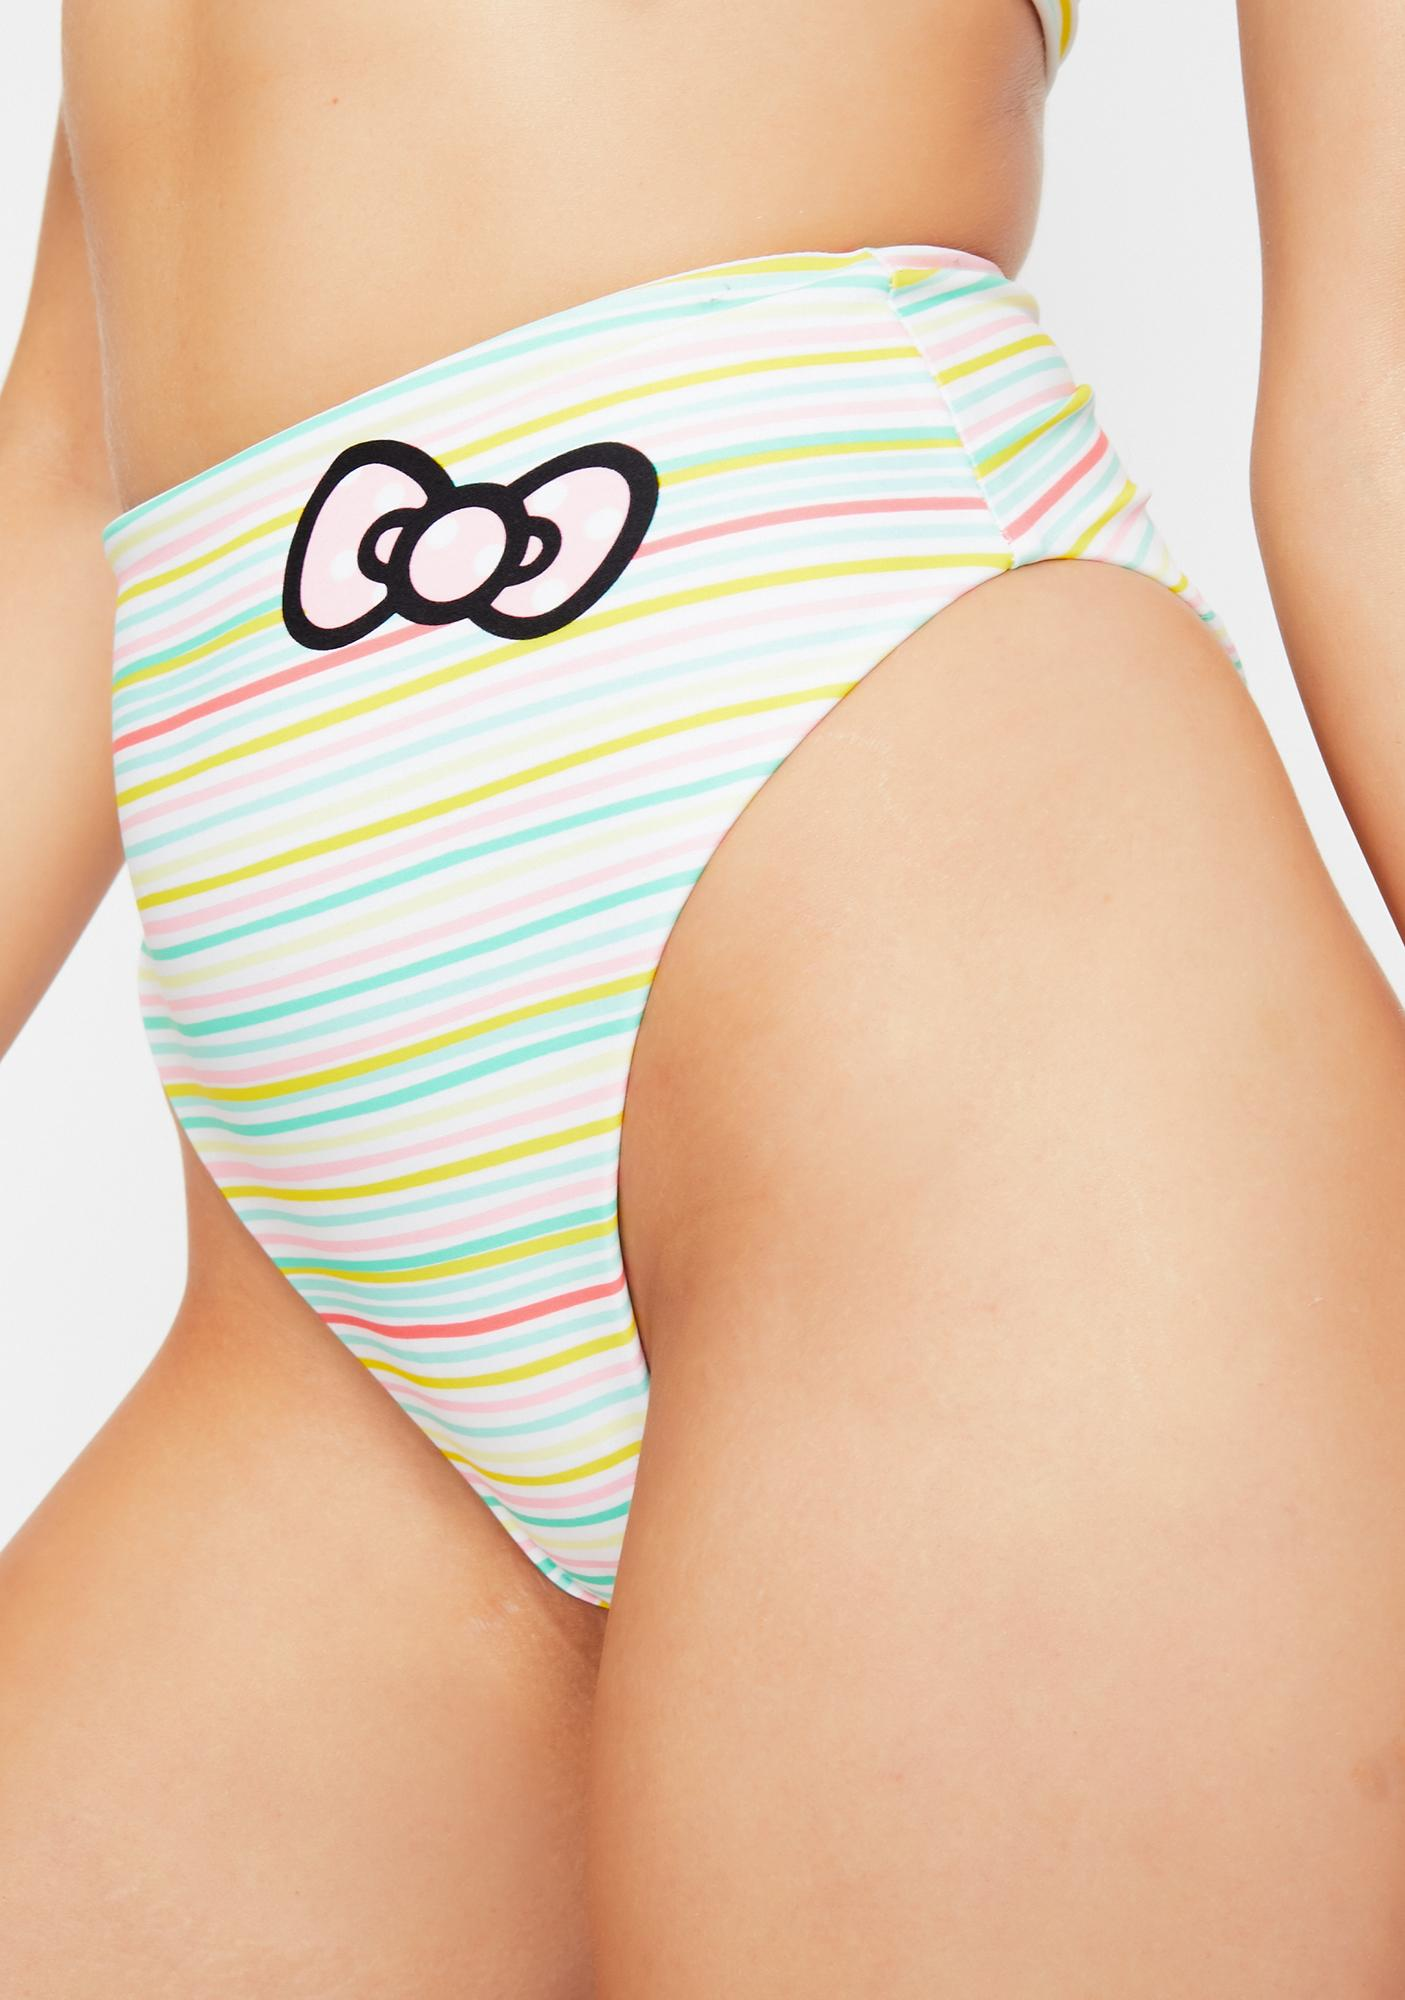 Lolli Swim x Hello Kitty Sweetie Bikini Bottoms